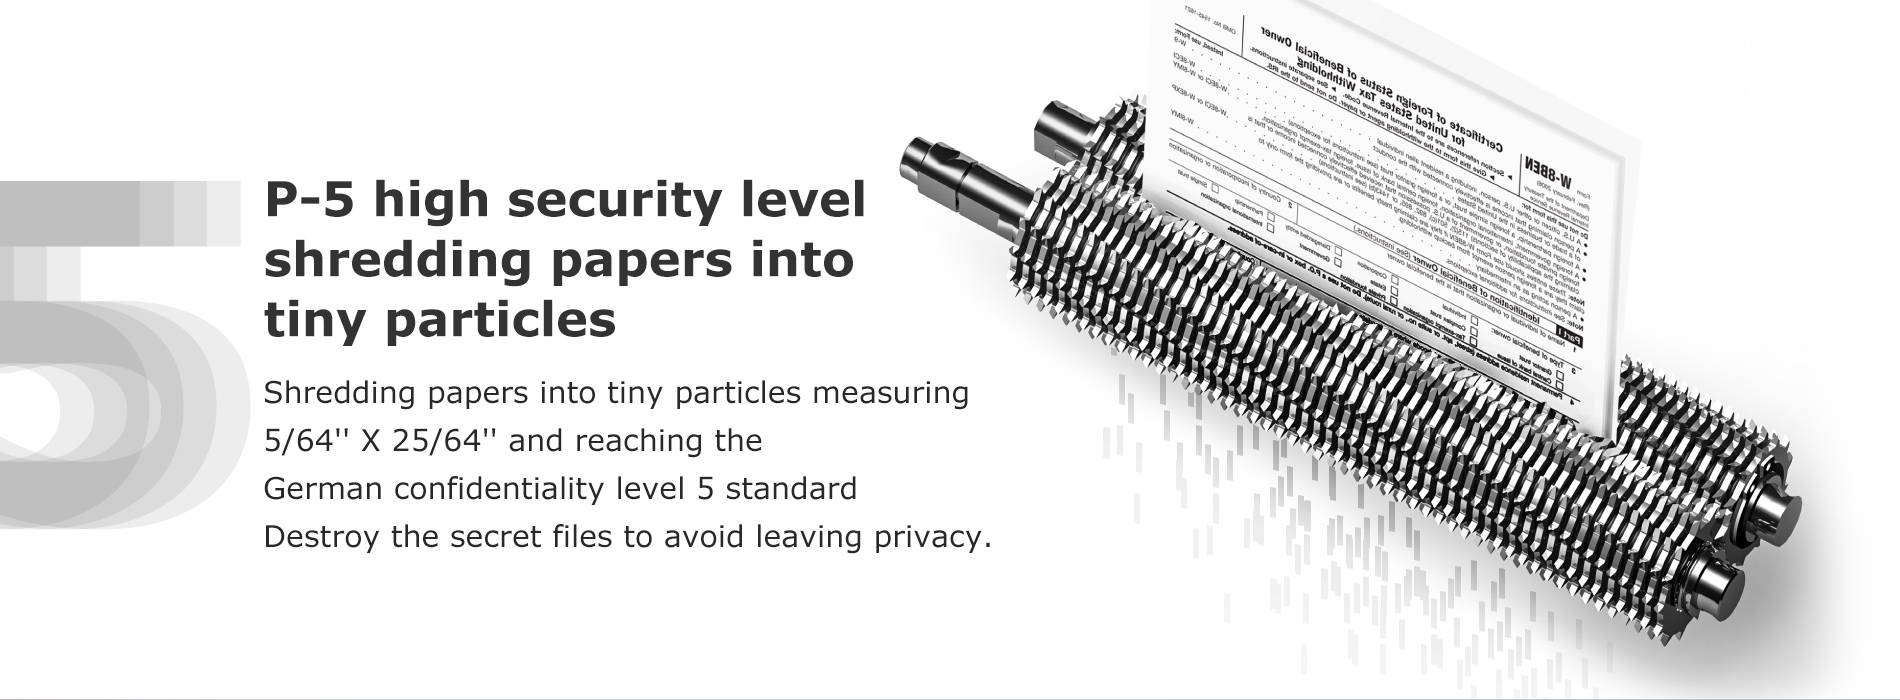 P-5 high security level shredding papers into tiny particles Shredding papers into tiny particles measuring  5/64'' X 25/64'' and reaching the German confidentiality level 5 standard Destroy the secret files to avoid leaving privacy.